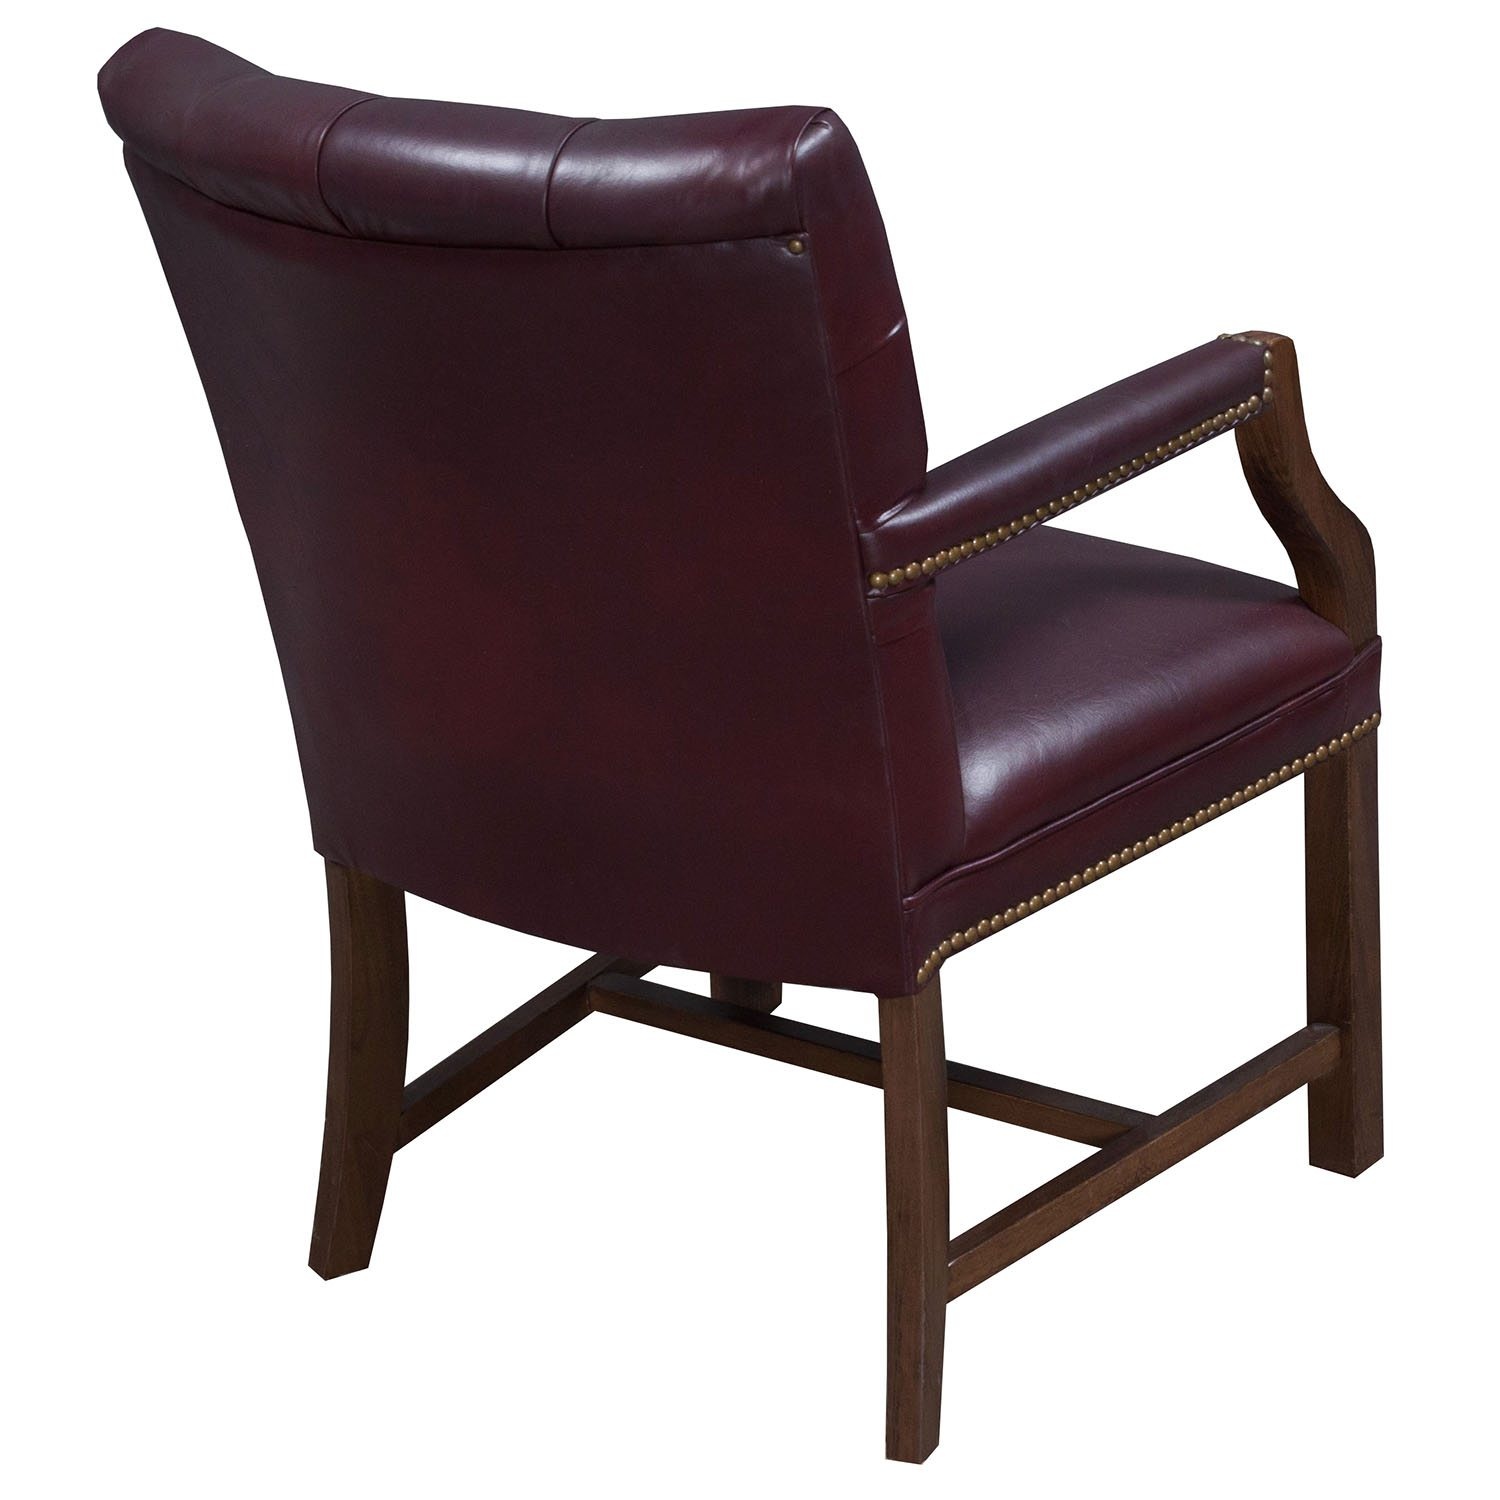 office side chairs stickley dining chair plans traditional walnut tufted leather burgundy